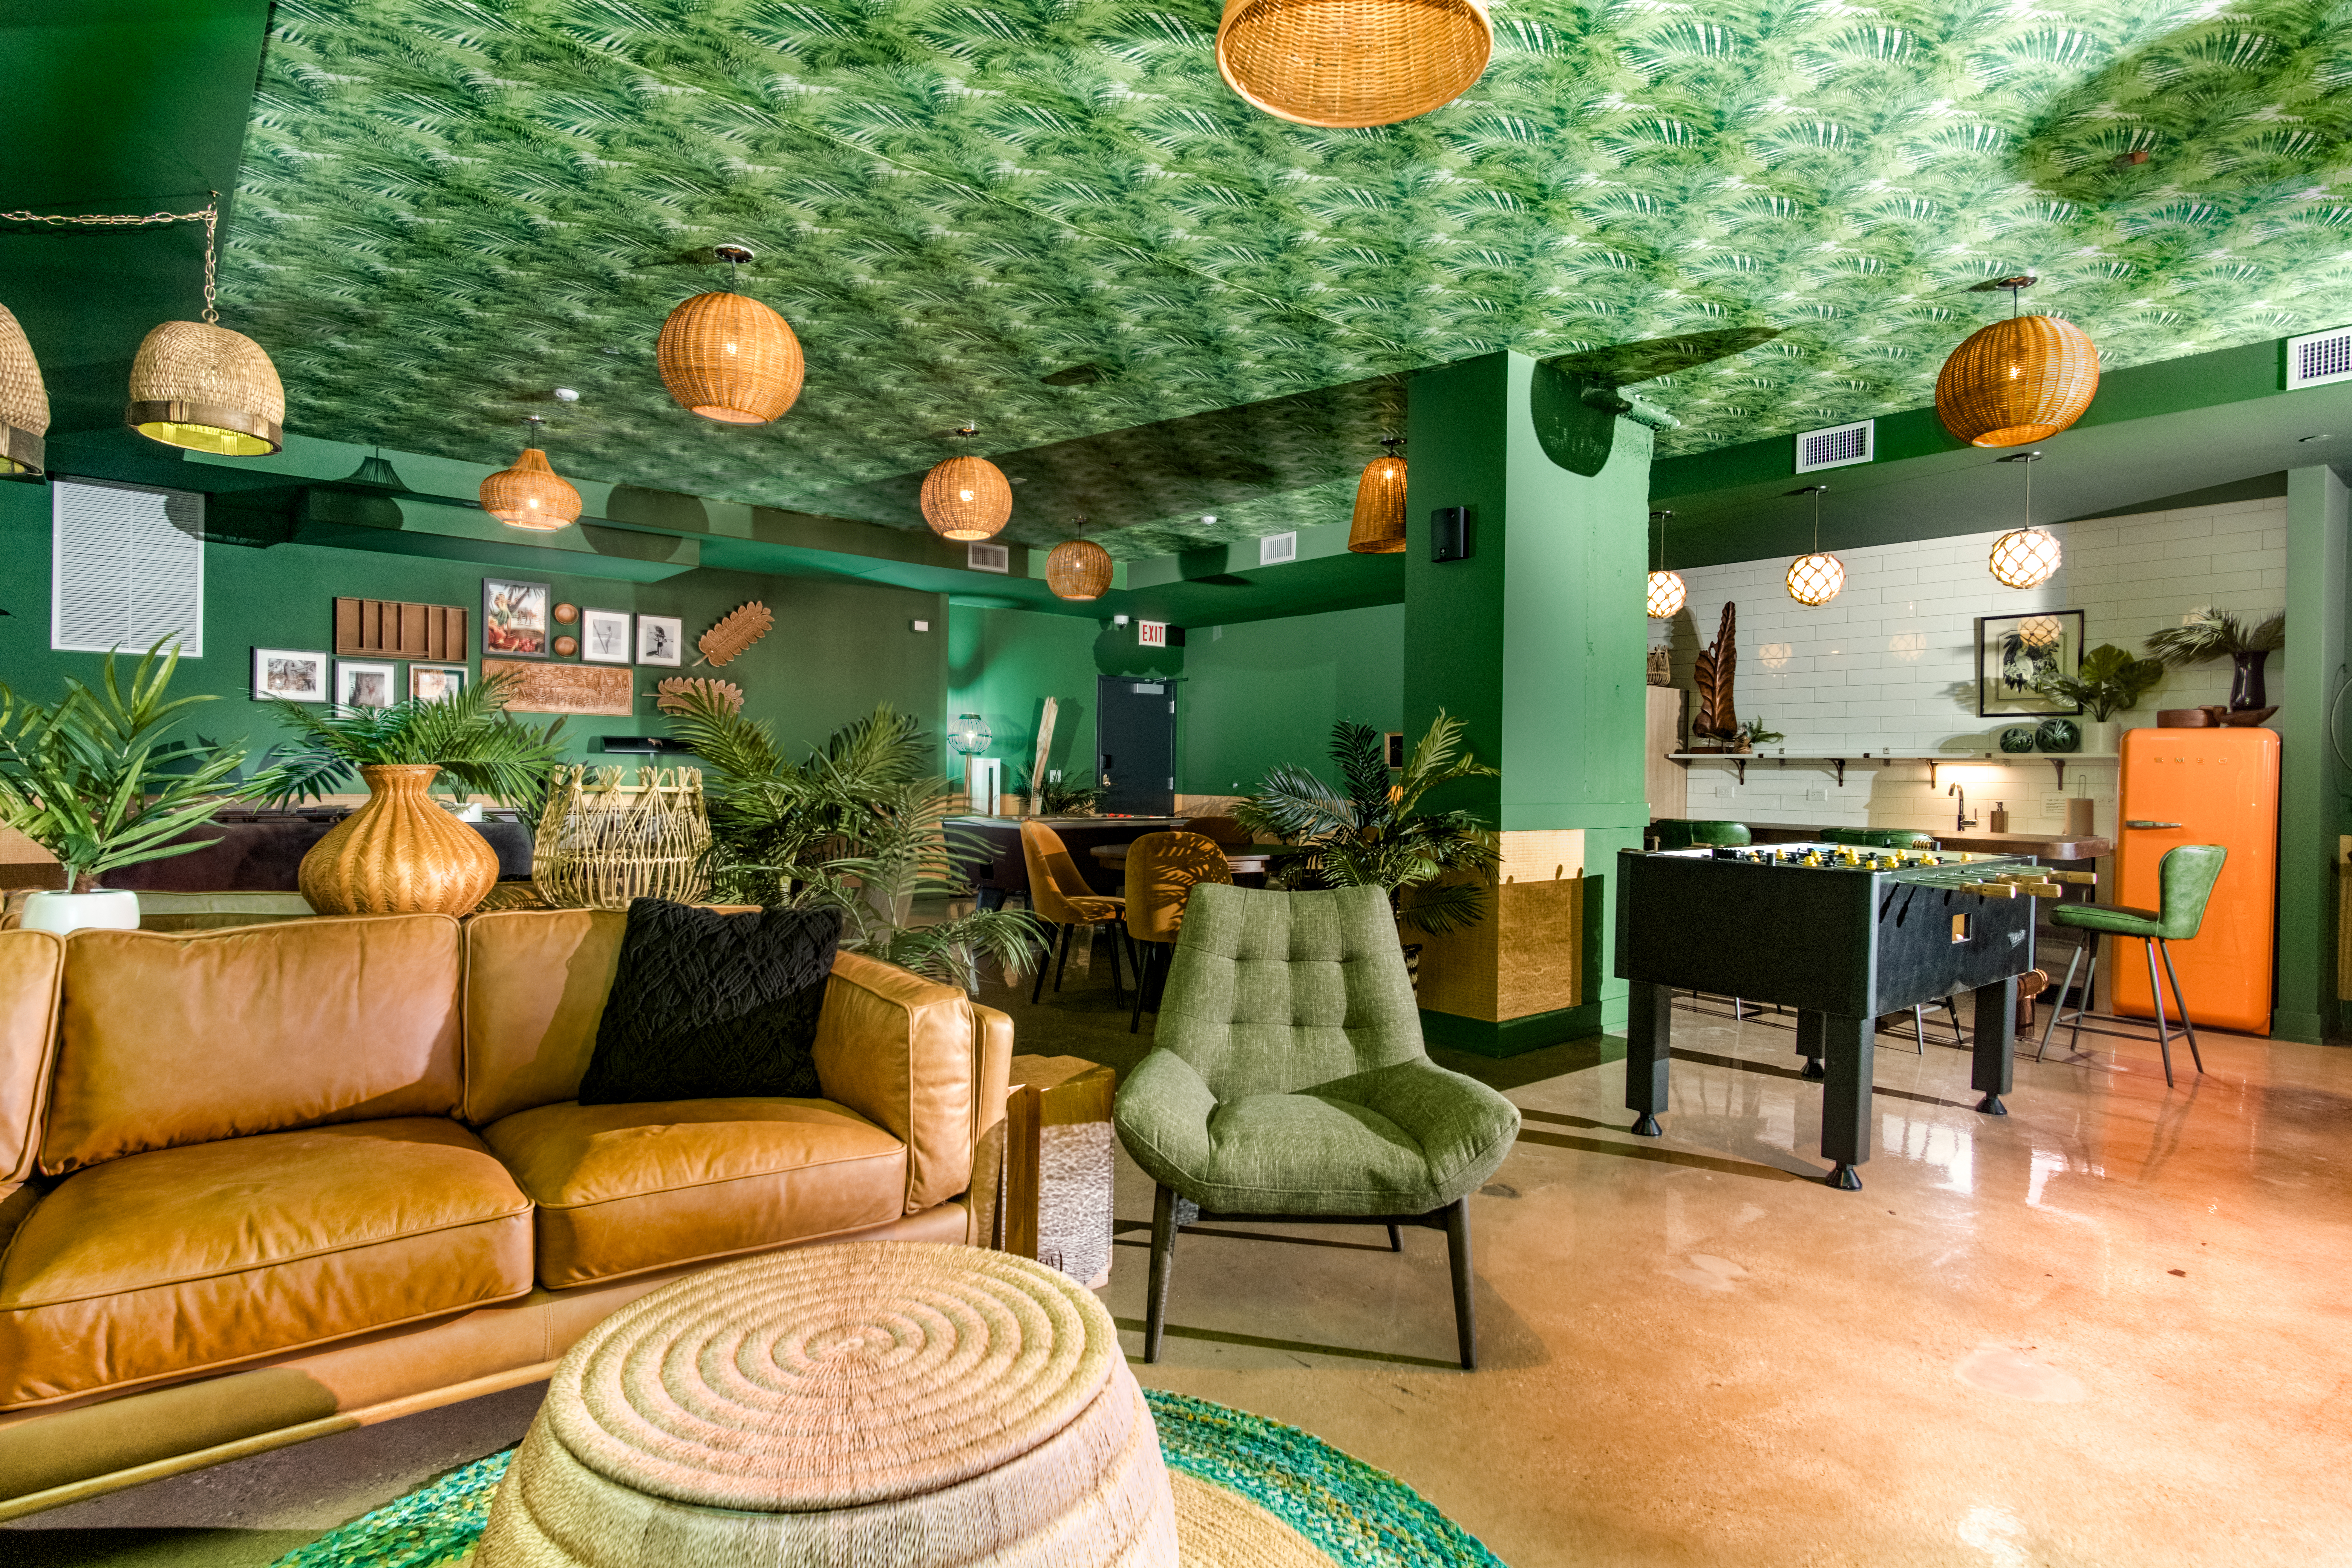 A lounge with a tropical theme including palm leaf patterned paper on the ceiling, wicker lamps, brown leather chairs, and game tables.